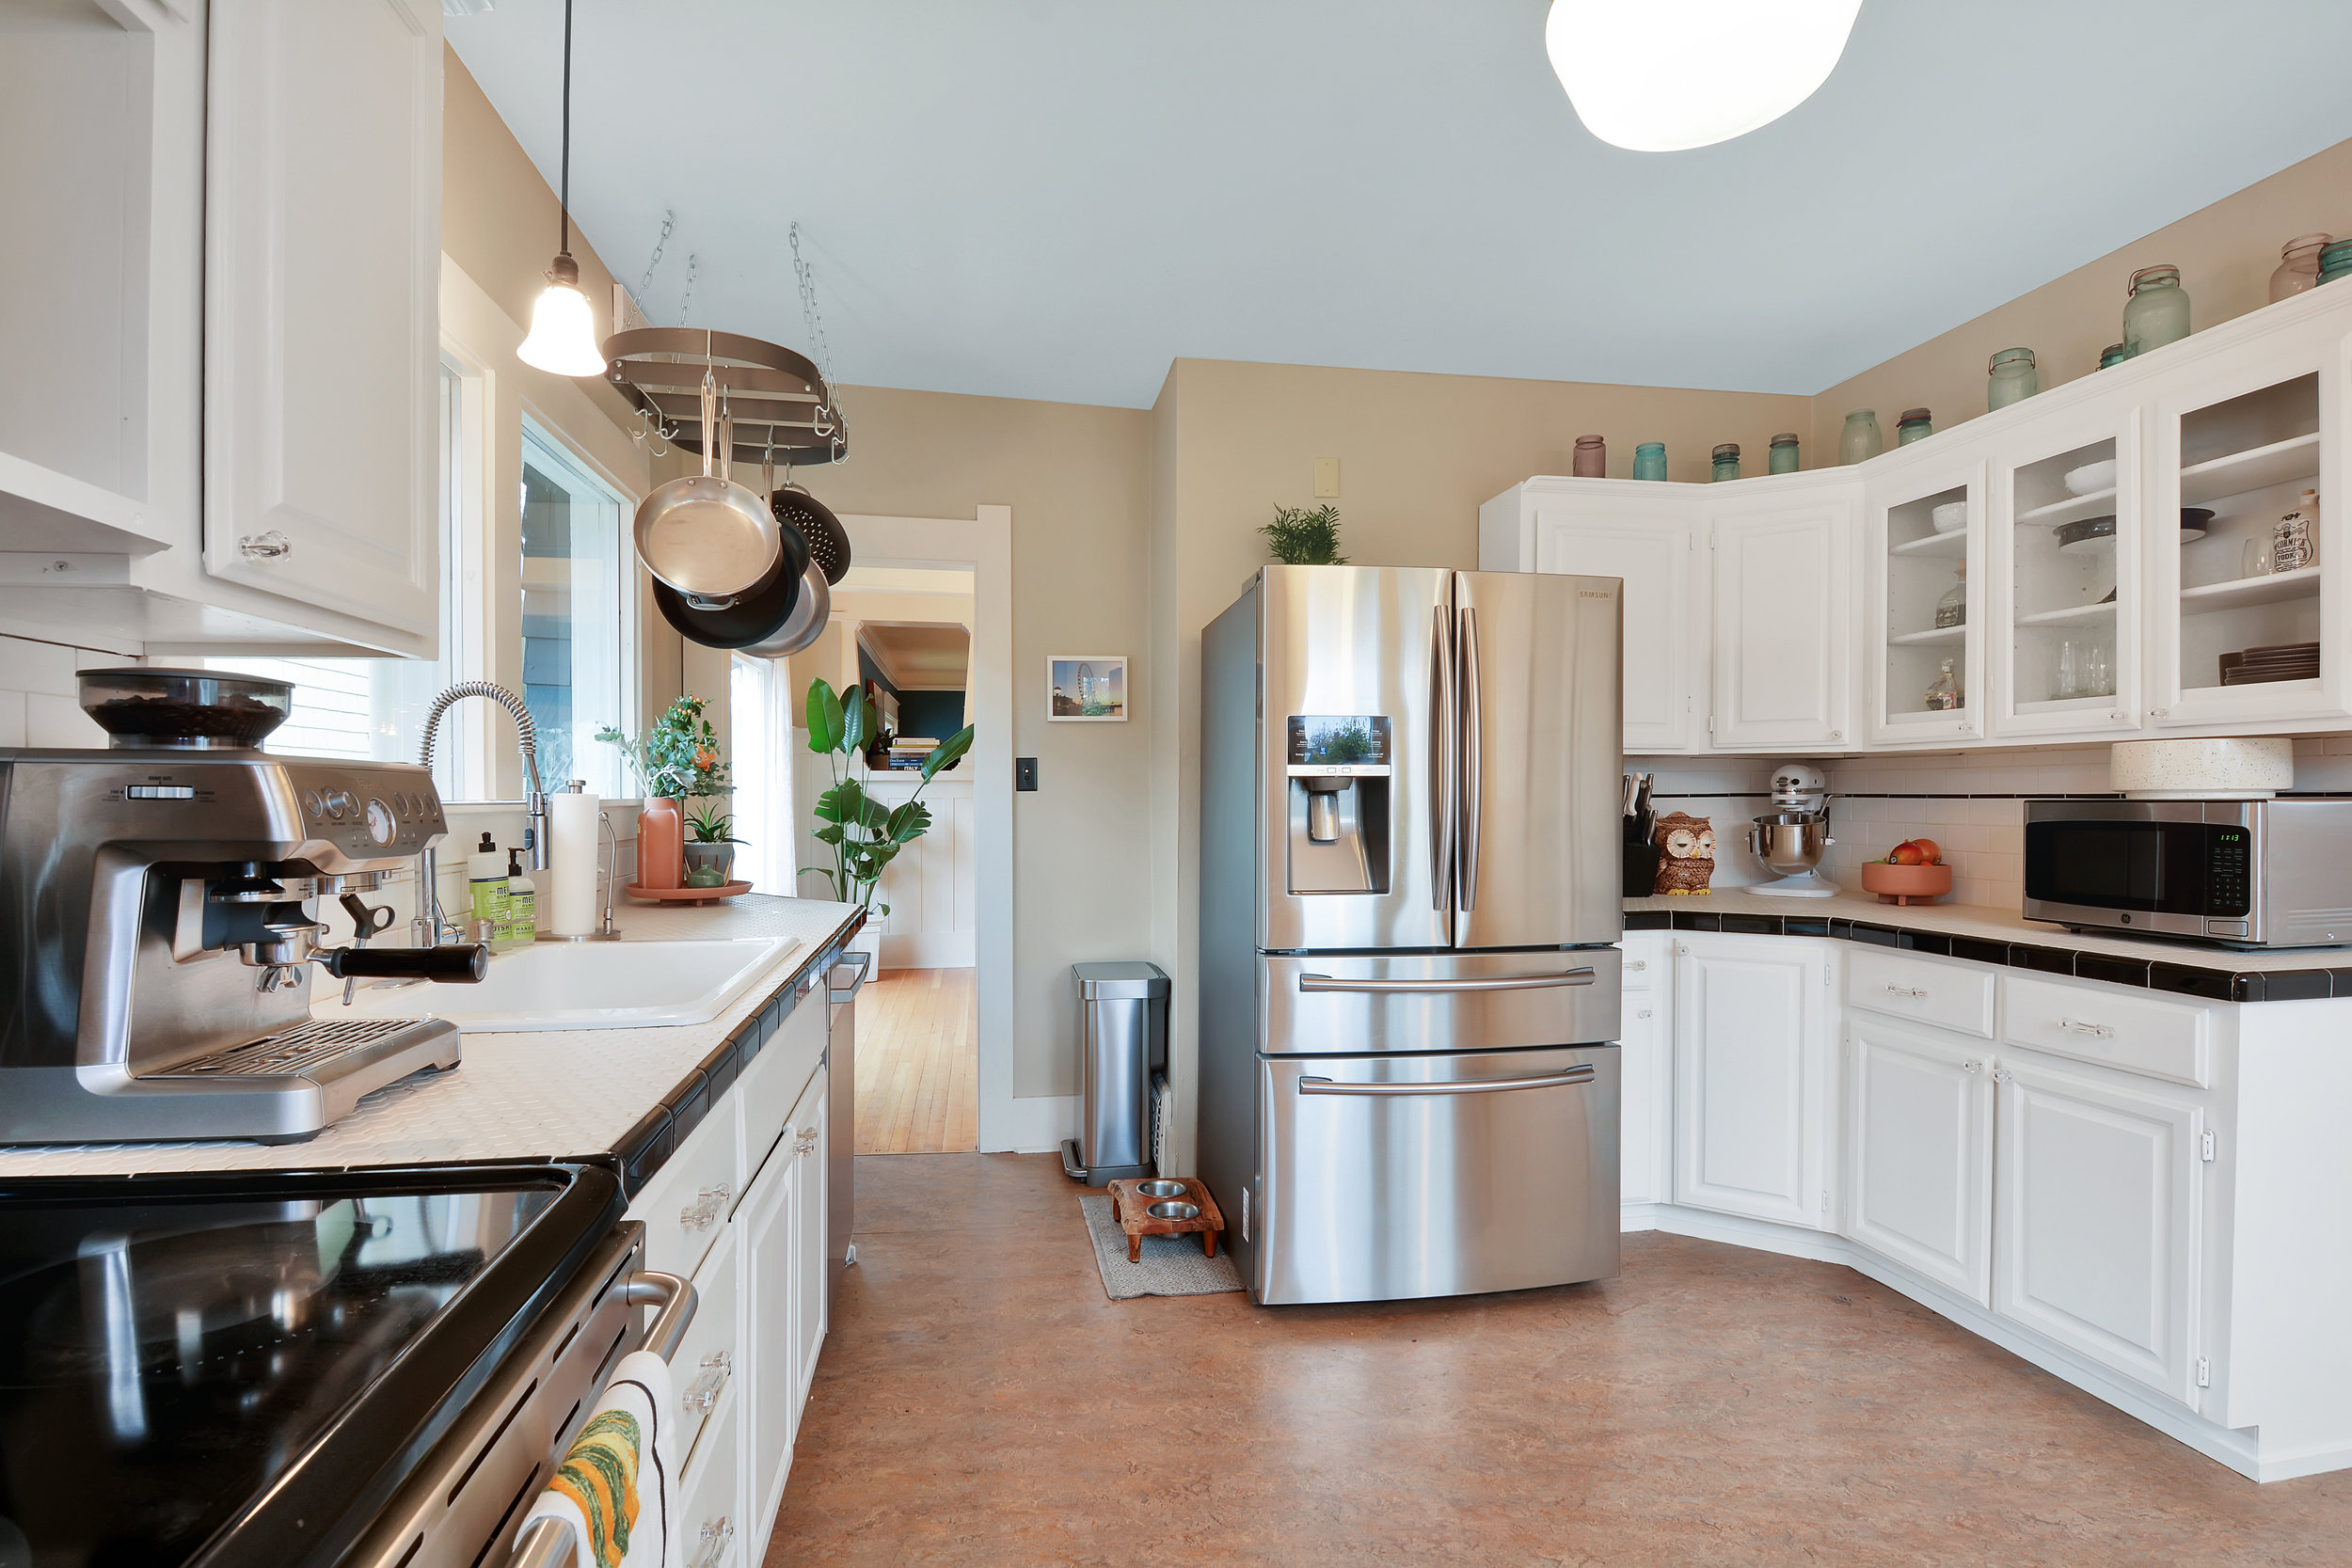 Stainless appliances and bright white cabinets create a classic kitchen.